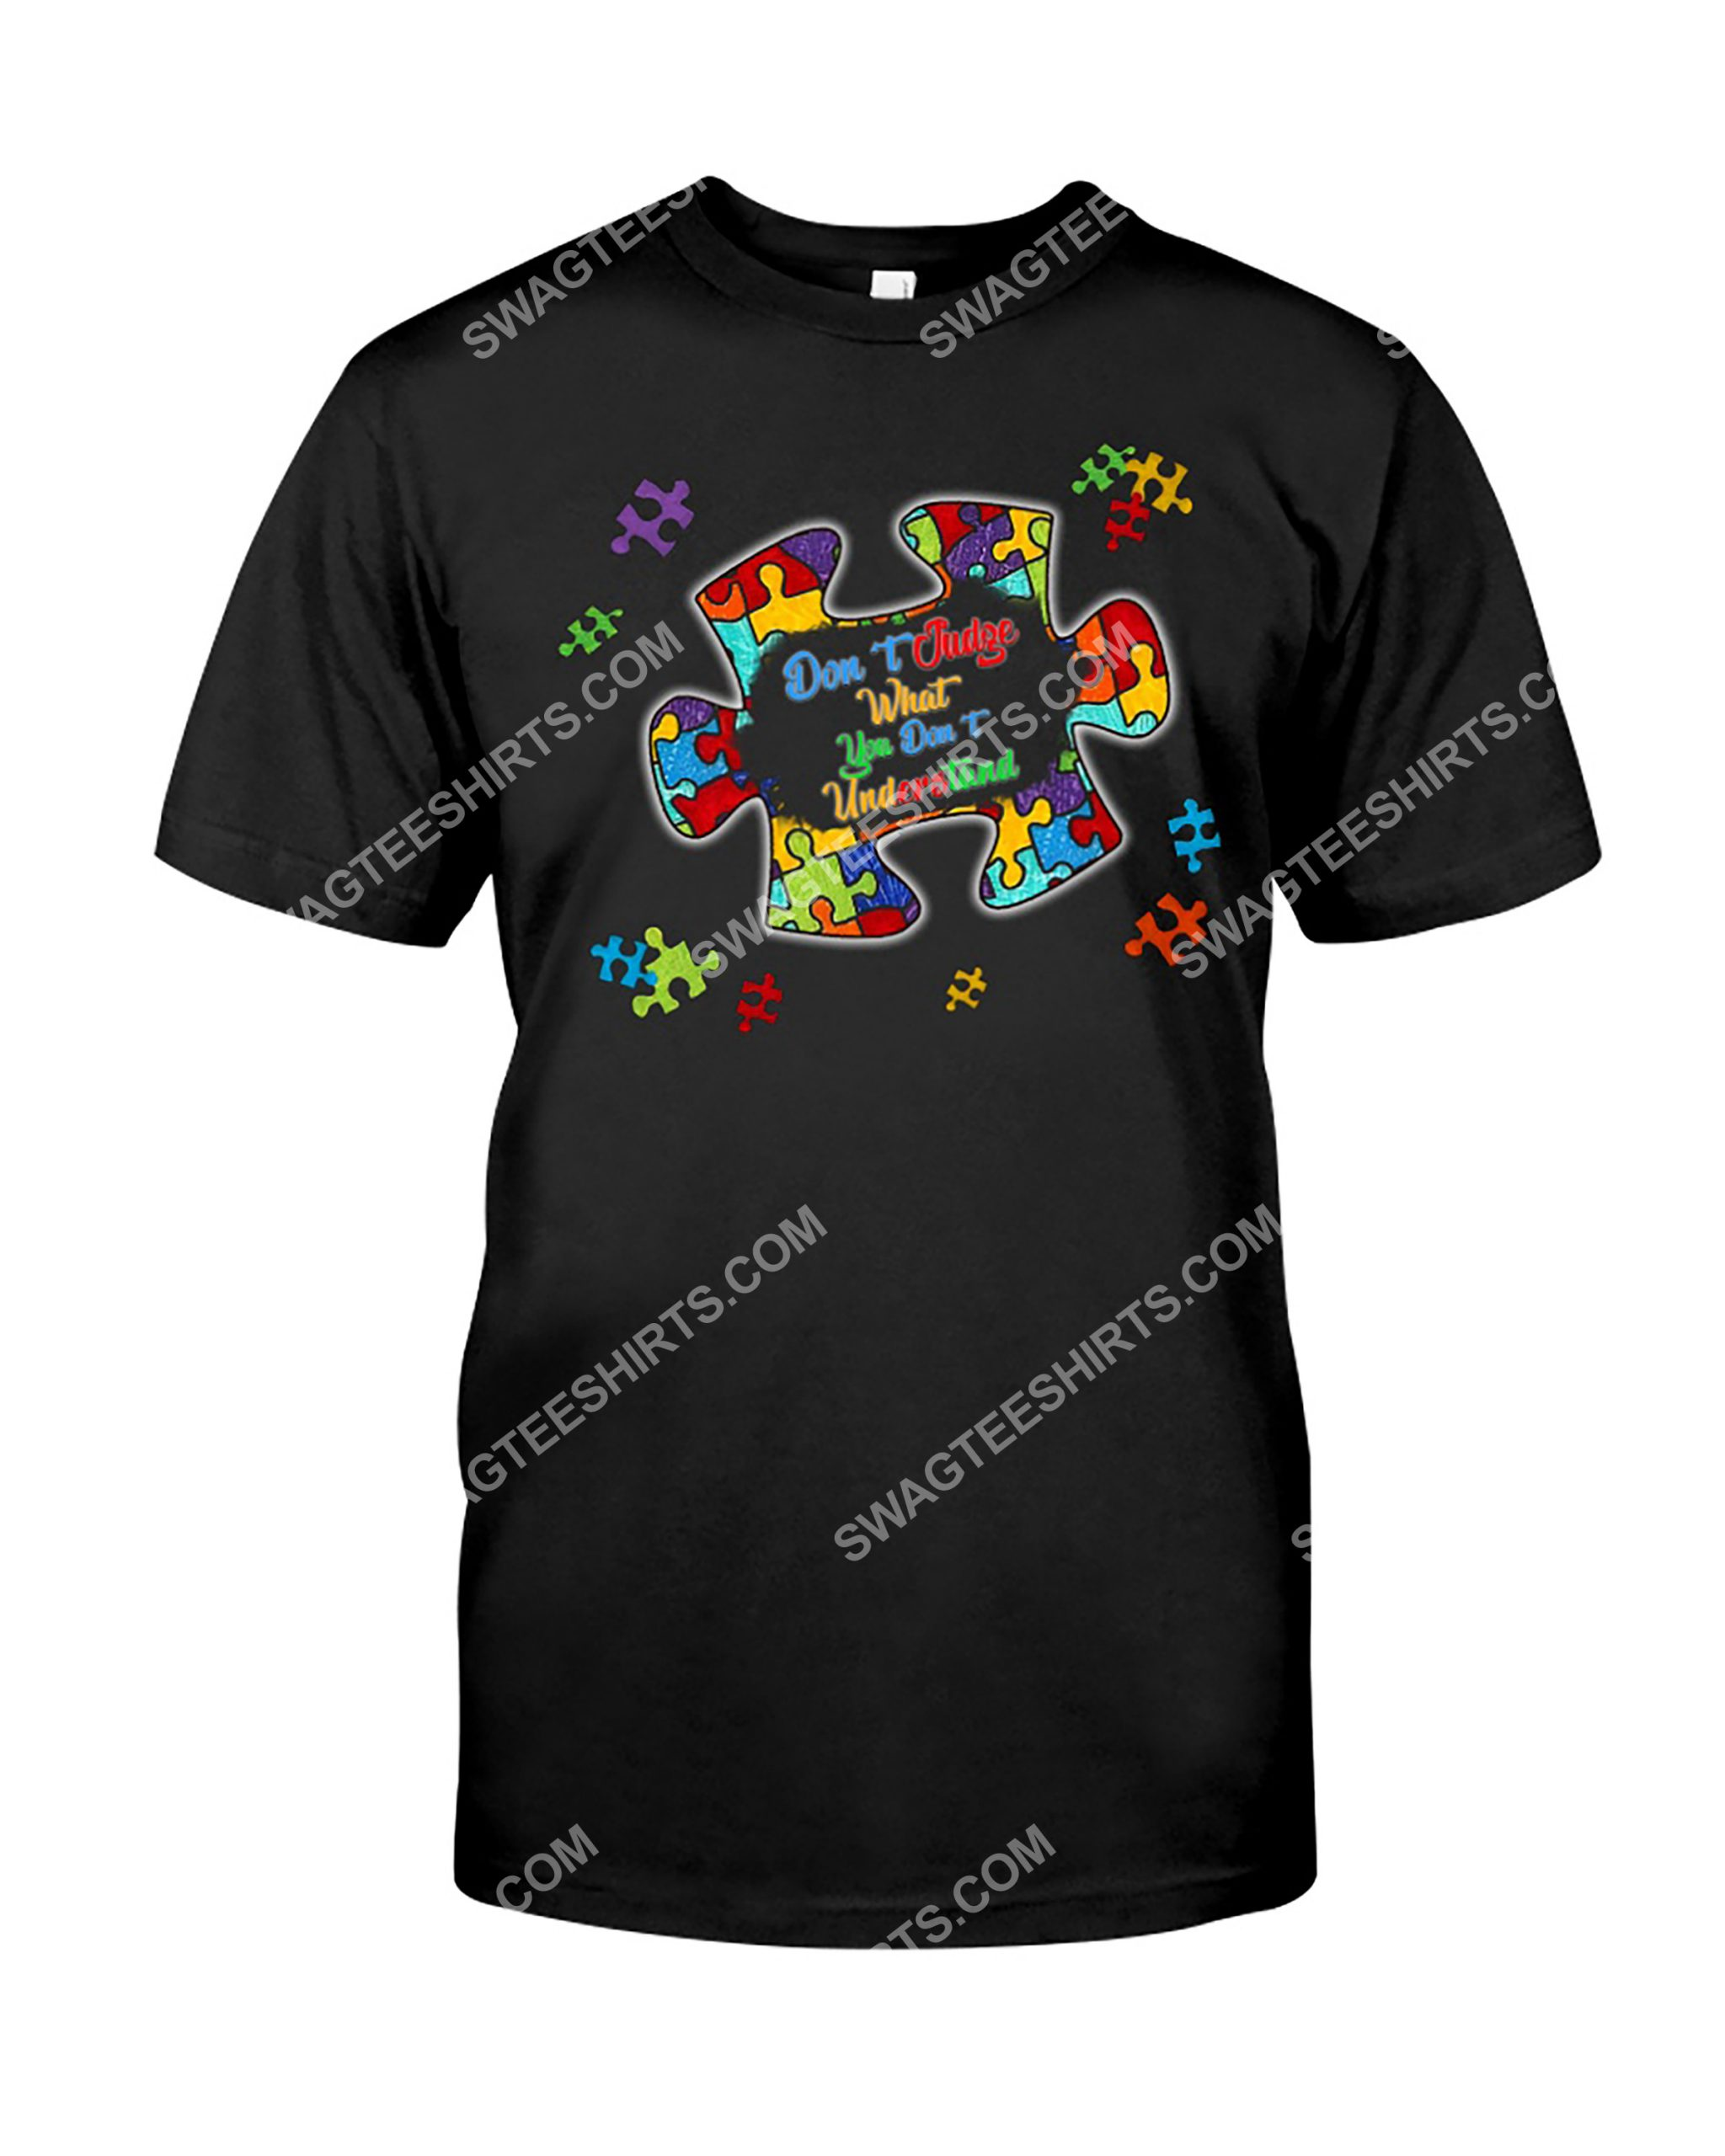 don't judge what you don't understand autism awareness shirt 1(1)